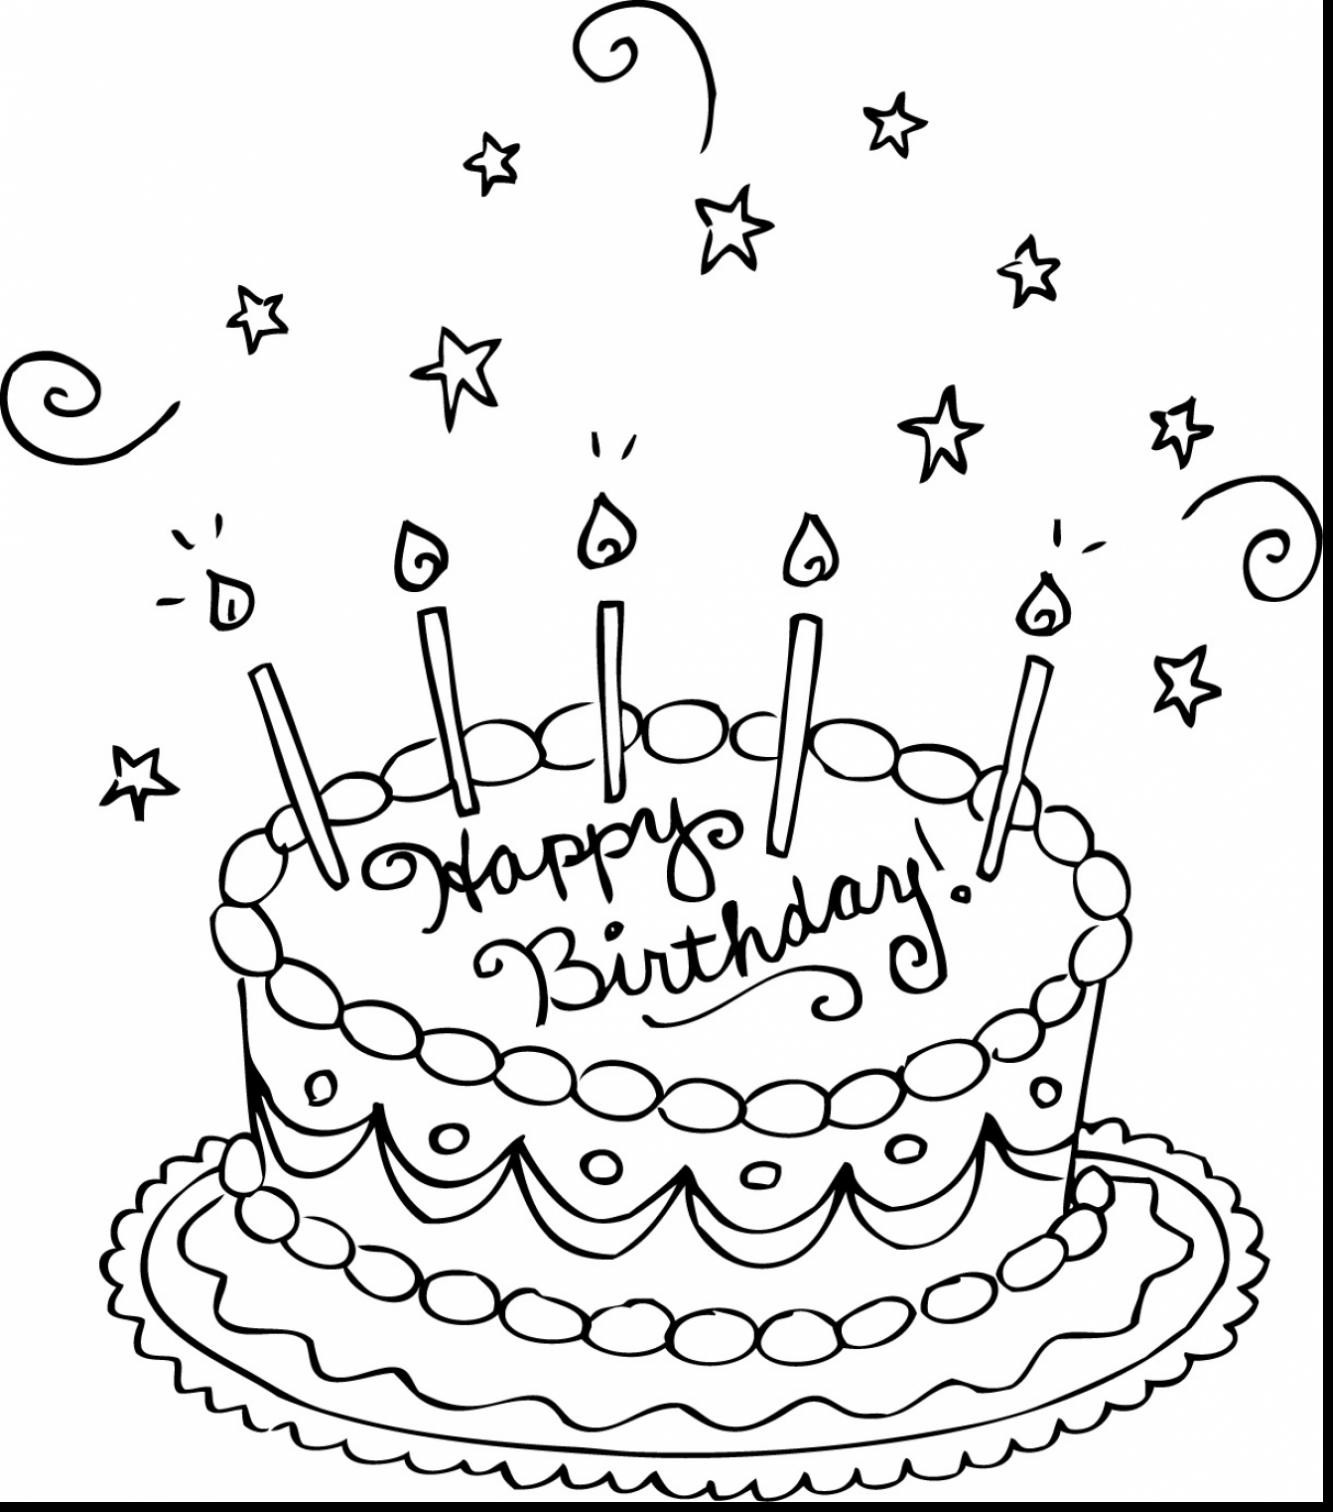 1333x1512 Small Birthday Cake Coloring Page Free Draw To Color